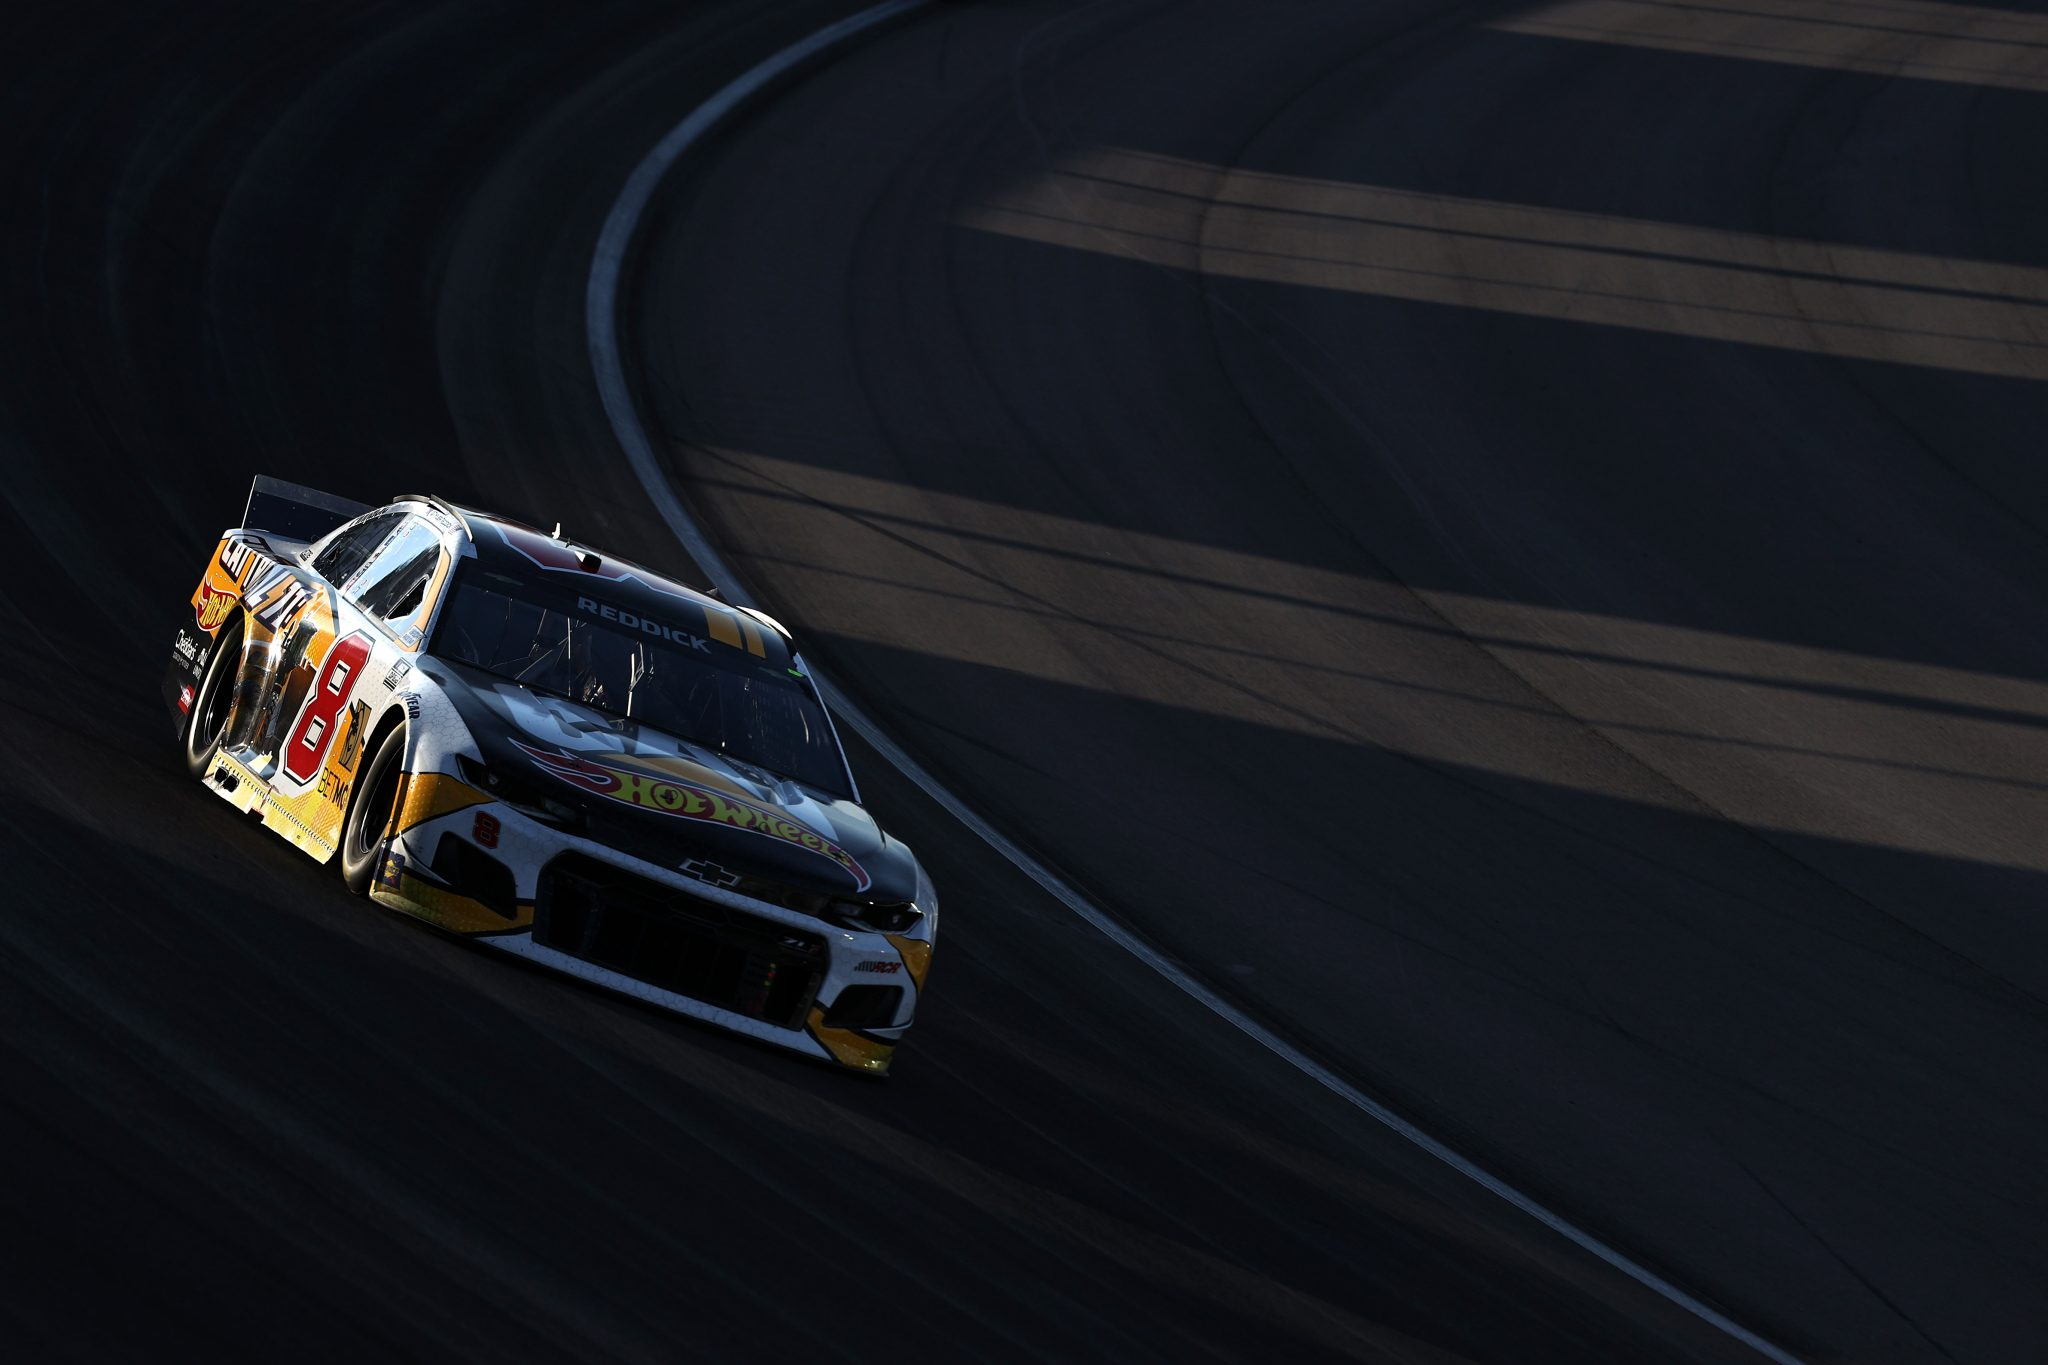 LAS VEGAS, NEVADA - SEPTEMBER 26: Tyler Reddick, driver of the #8 Cat Trial 11:Hot Wheels Chevrolet, drives during the NASCAR Cup Series South Point 400 at Las Vegas Motor Speedway on September 26, 2021 in Las Vegas, Nevada. (Photo by Meg Oliphant/Getty Images)   Getty Images